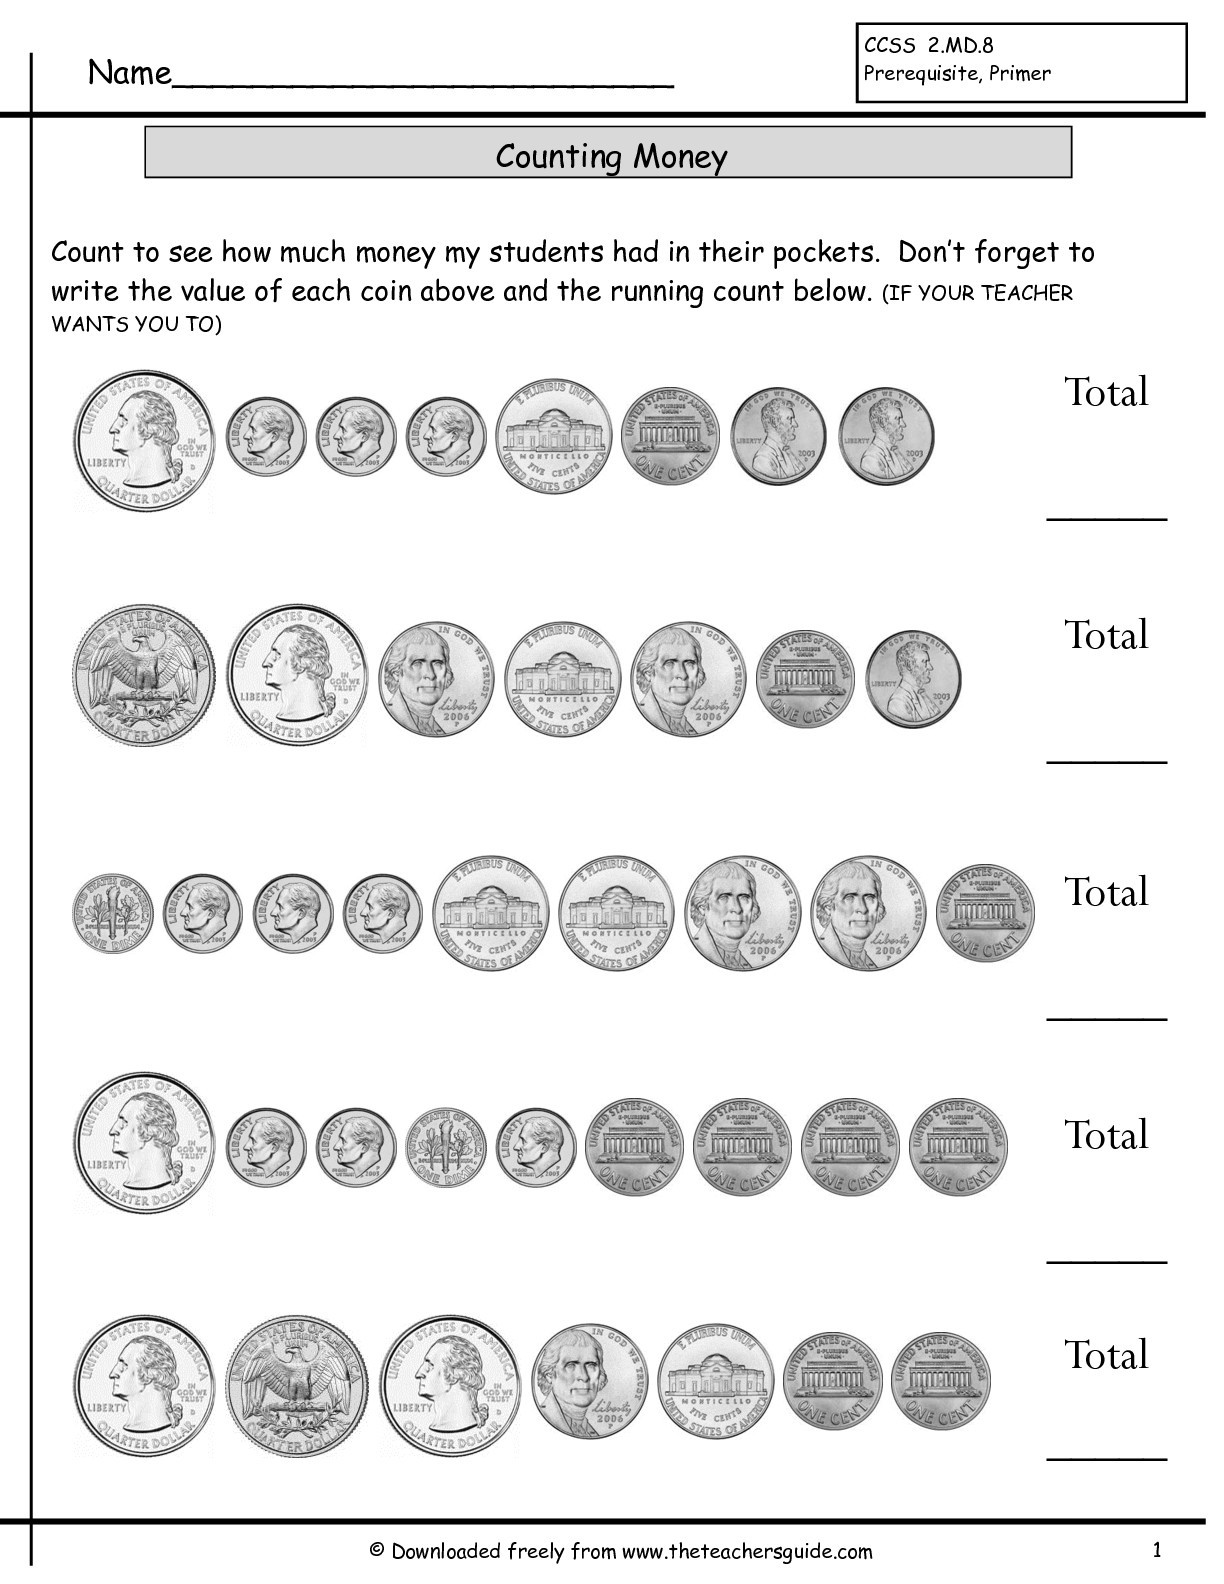 Counting Coins Worksheets 2nd Grade Counting Coins First Grade Lessons Tes Teach Worksheets